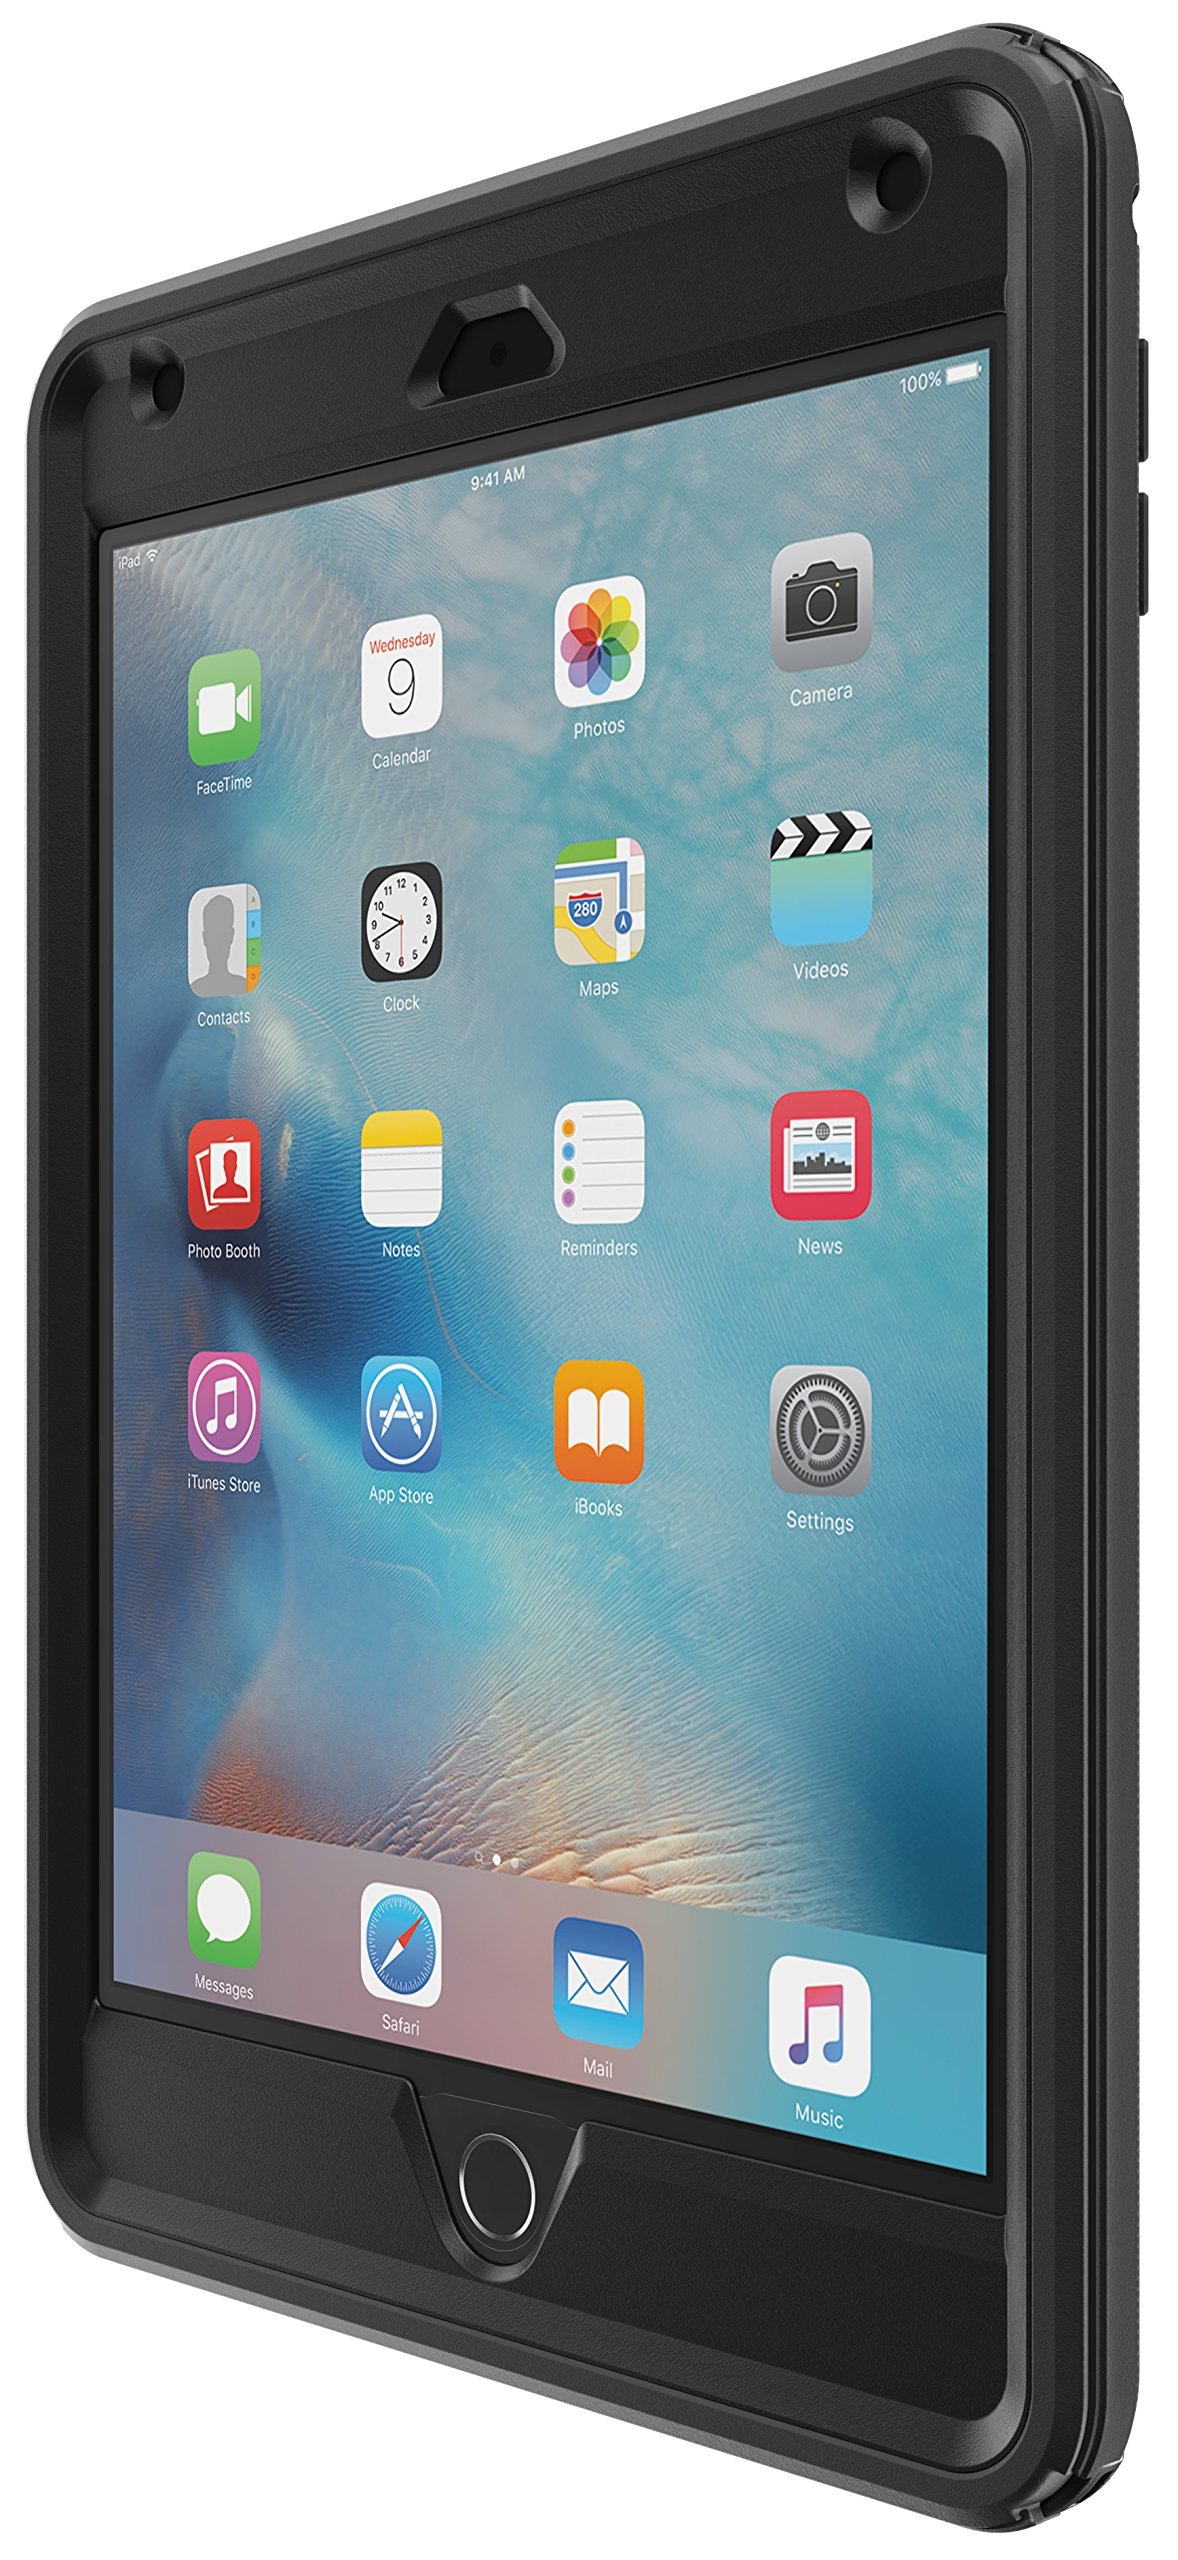 OtterBox DEFENDER SERIES Case for iPad Mini 4 (ONLY) - Retail Packaging - BLACK by OtterBox (Image #4)